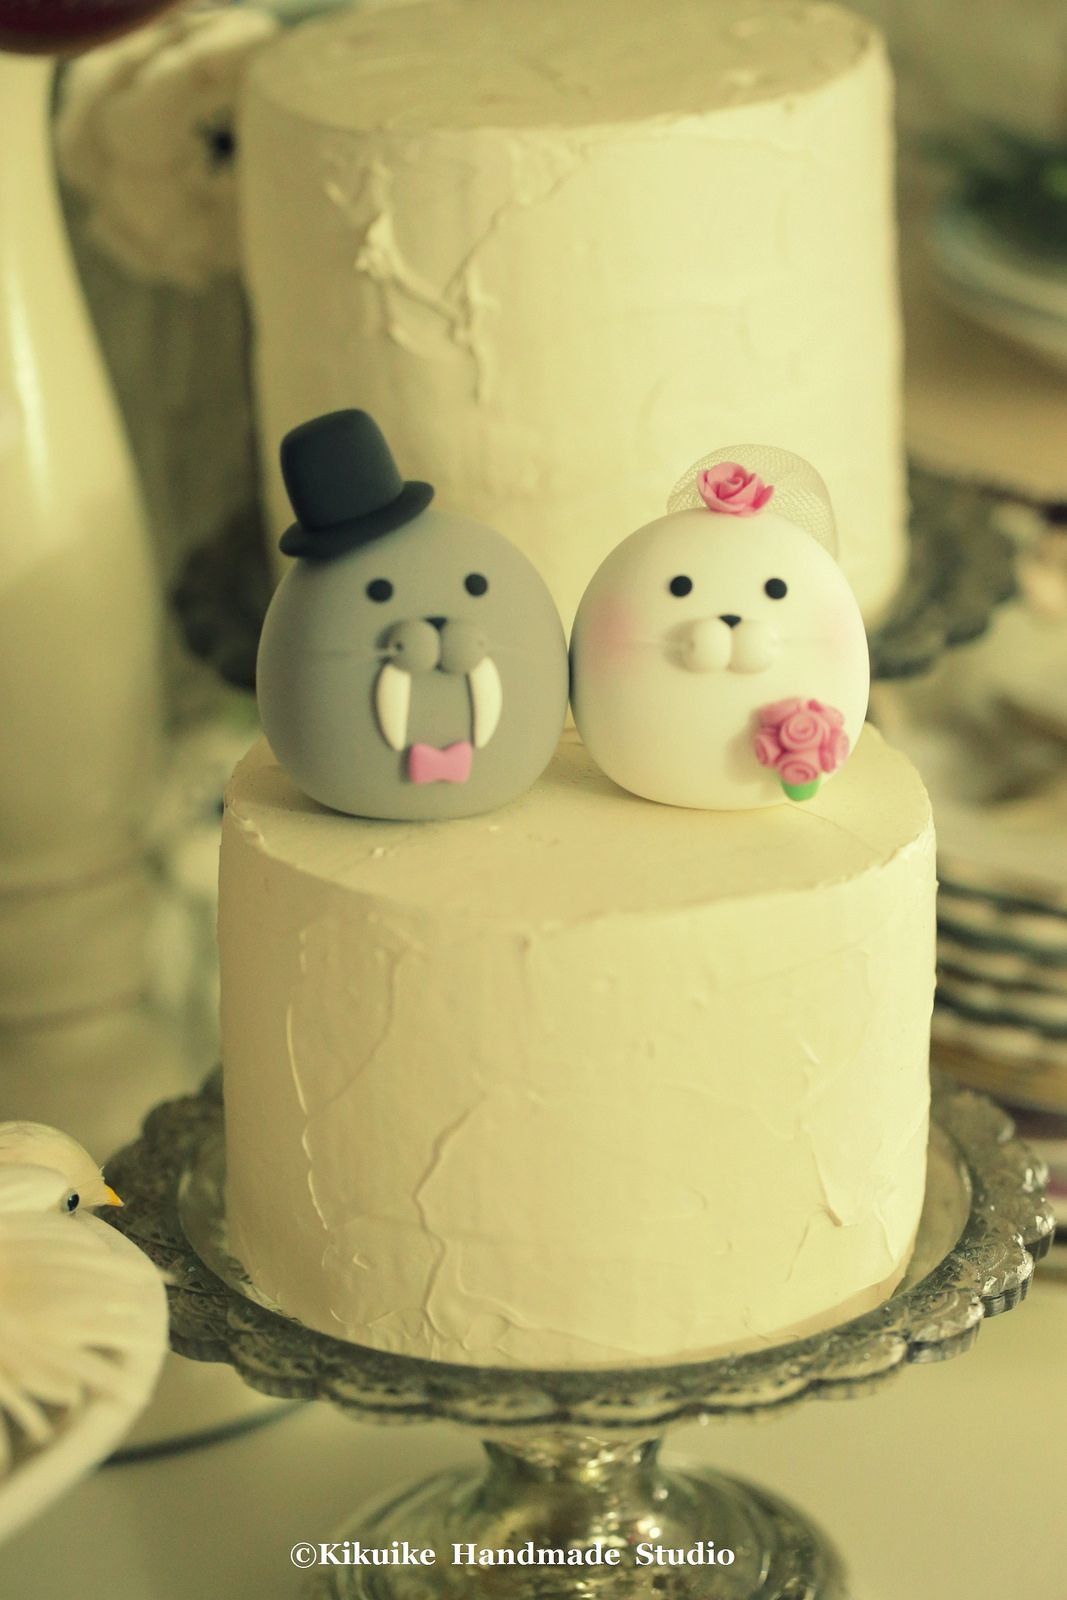 Seal and Walrus MochiEgg wedding cake topper | wedding cakes ...